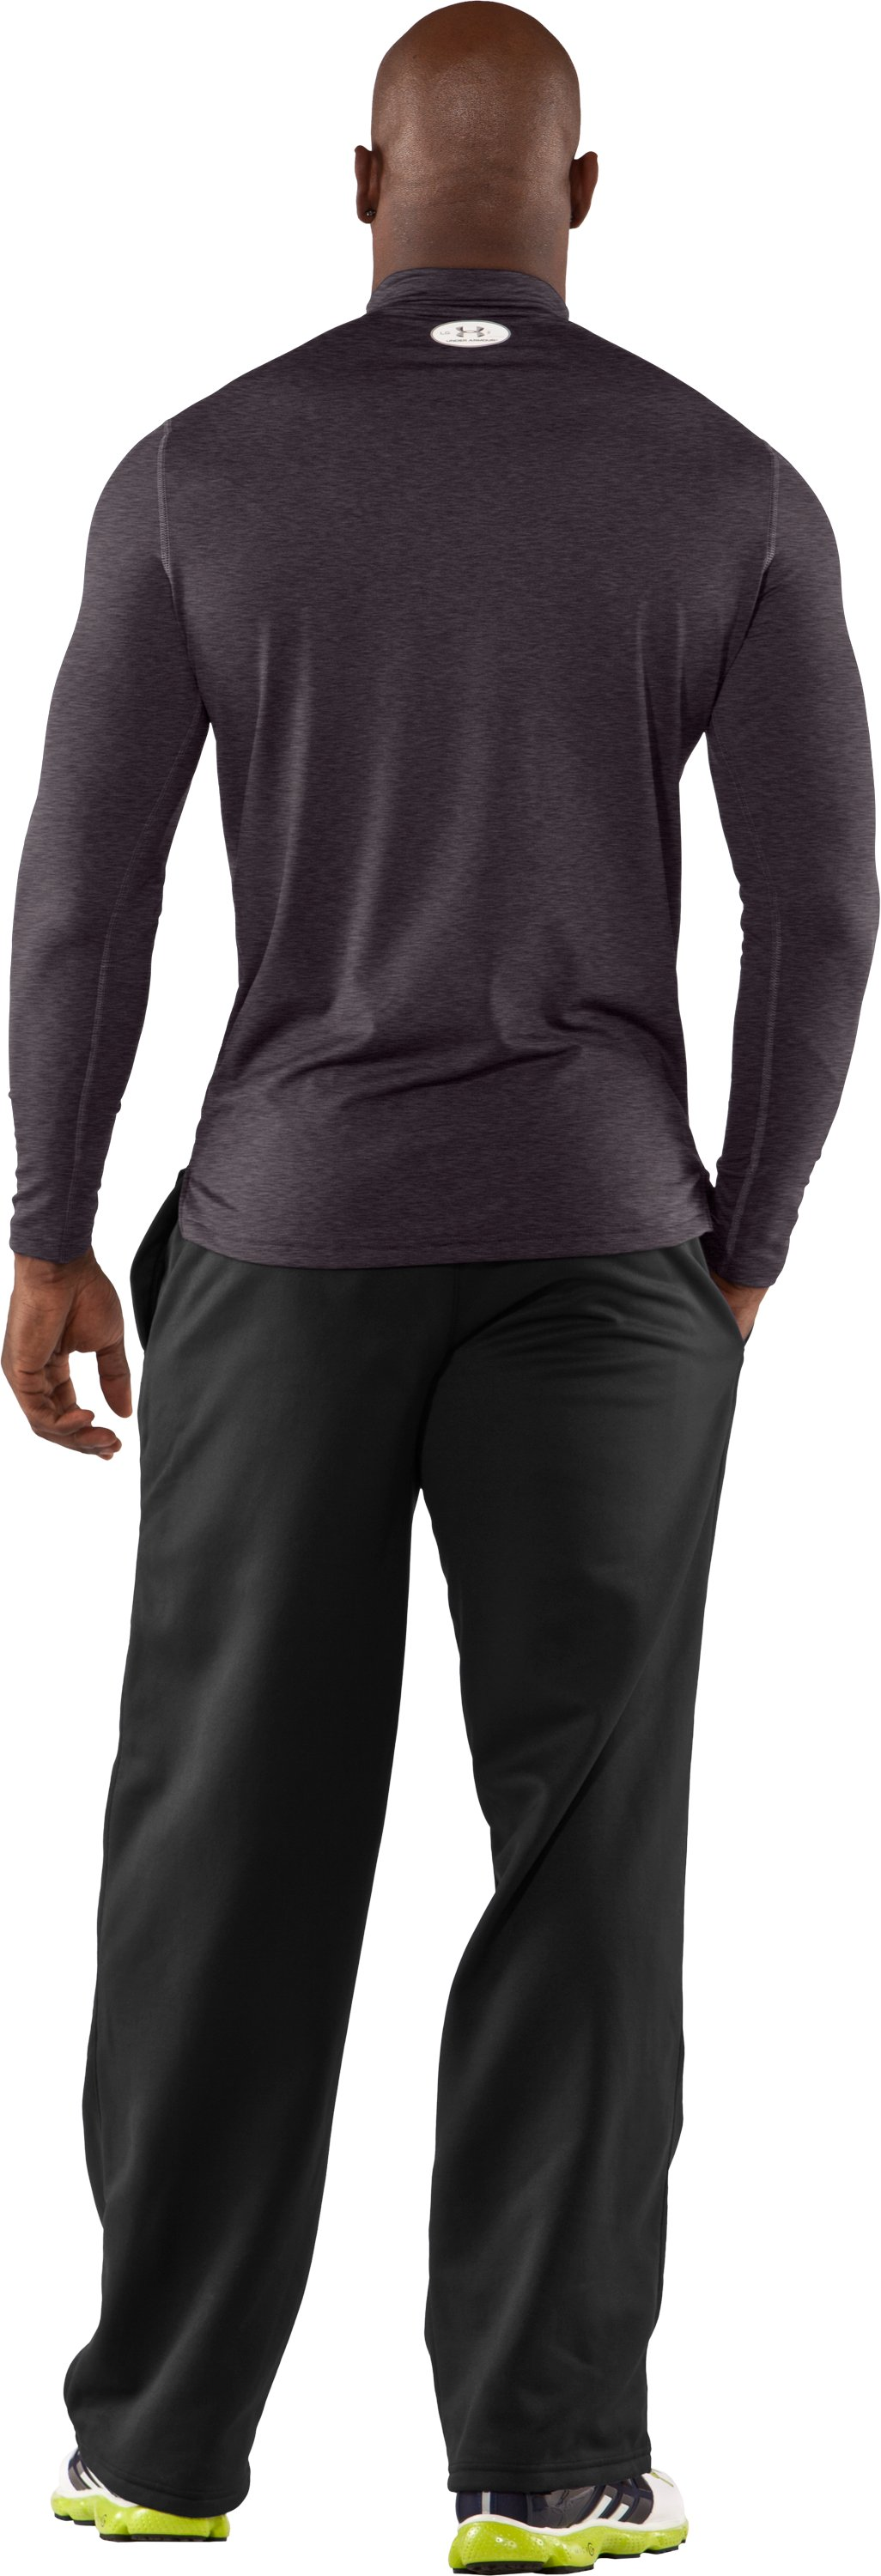 Men's ColdGear® Fitted Long Sleeve Mock, Carbon Heather, Back